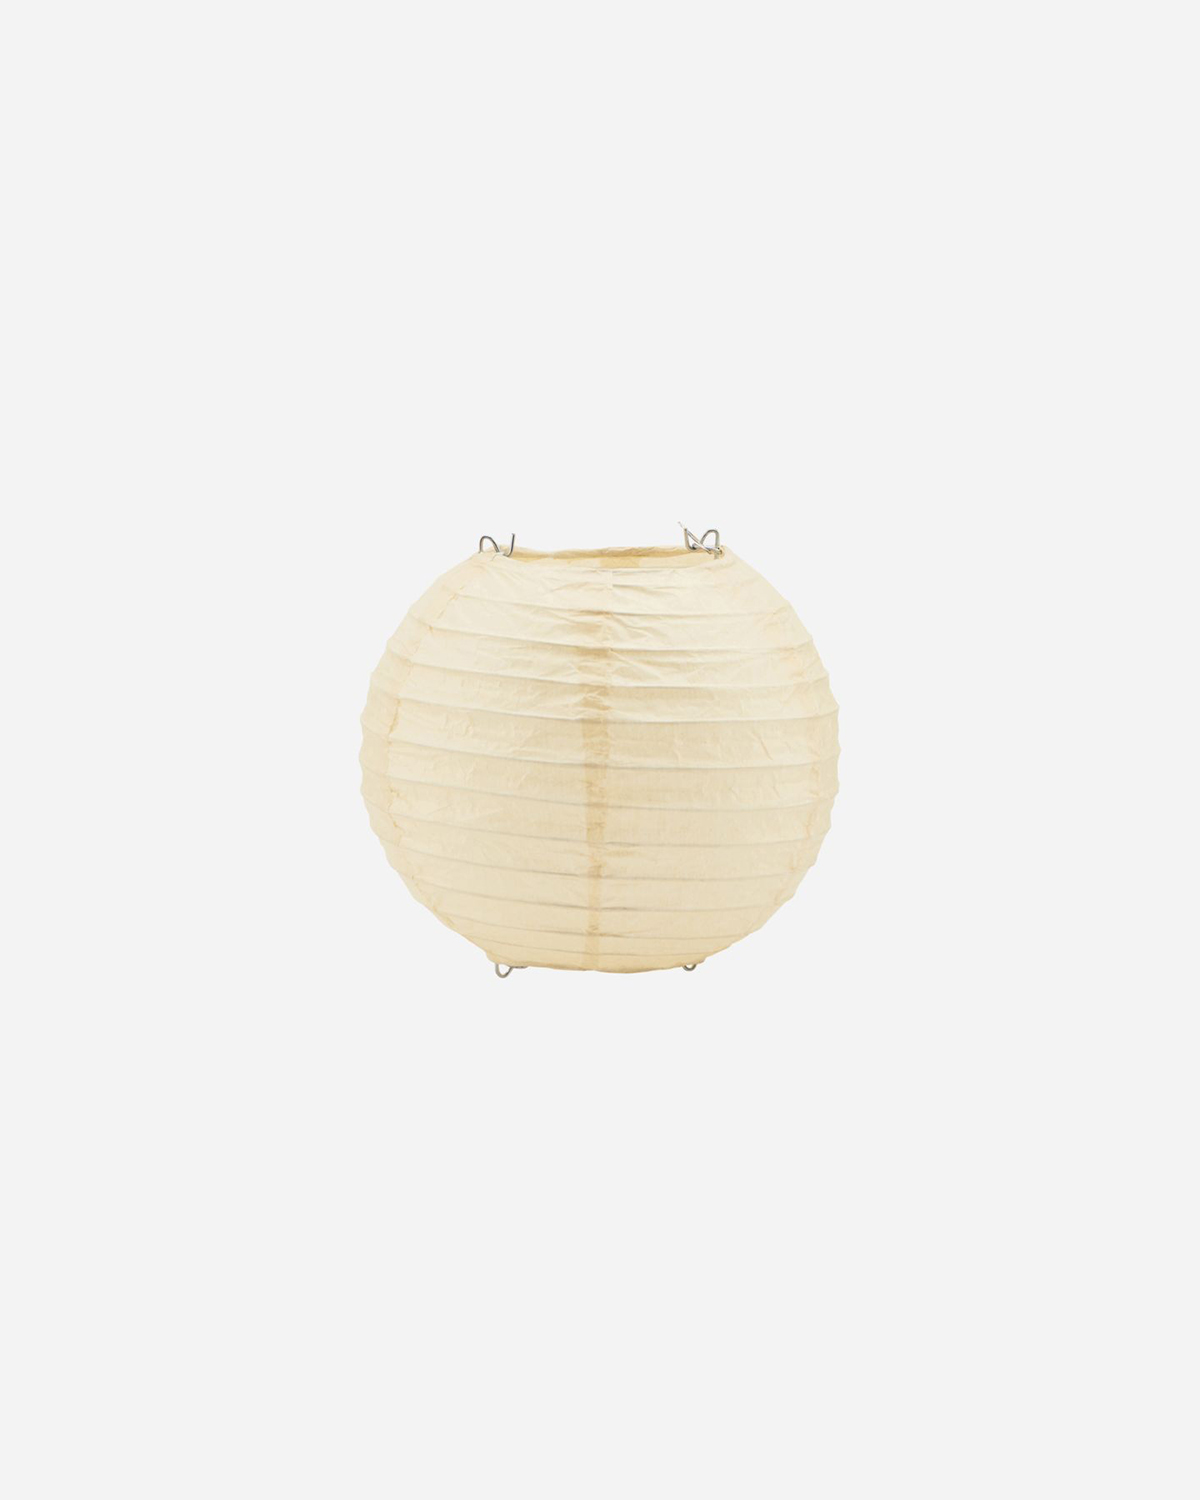 Lampshades for string lights, Soni, Sand, Pack of 10 pcs, Max 25 W